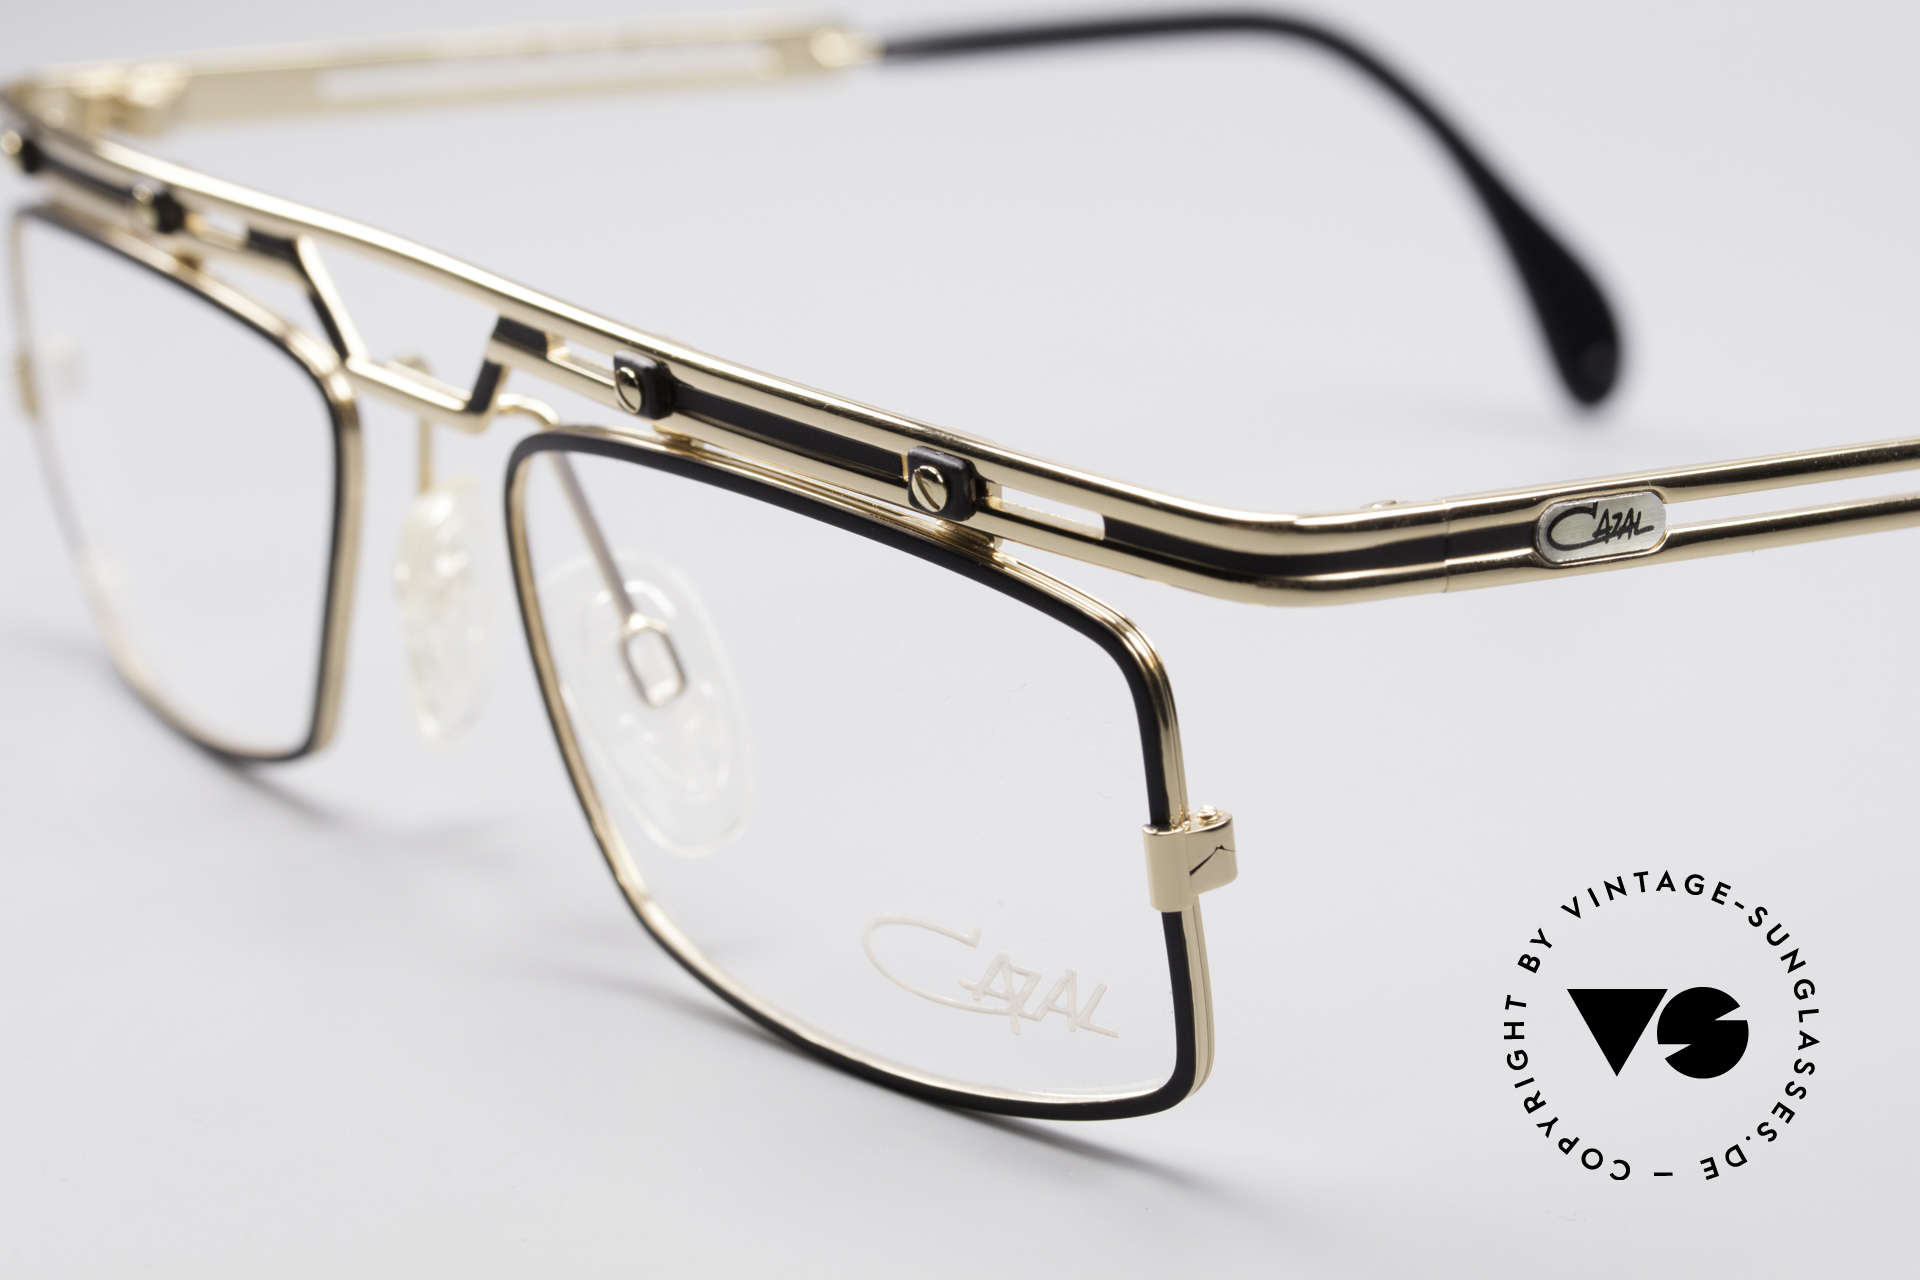 Cazal 975 Vintage 90's Designer Glasses, tangible superior crafting quality (made in Germany), Made for Men